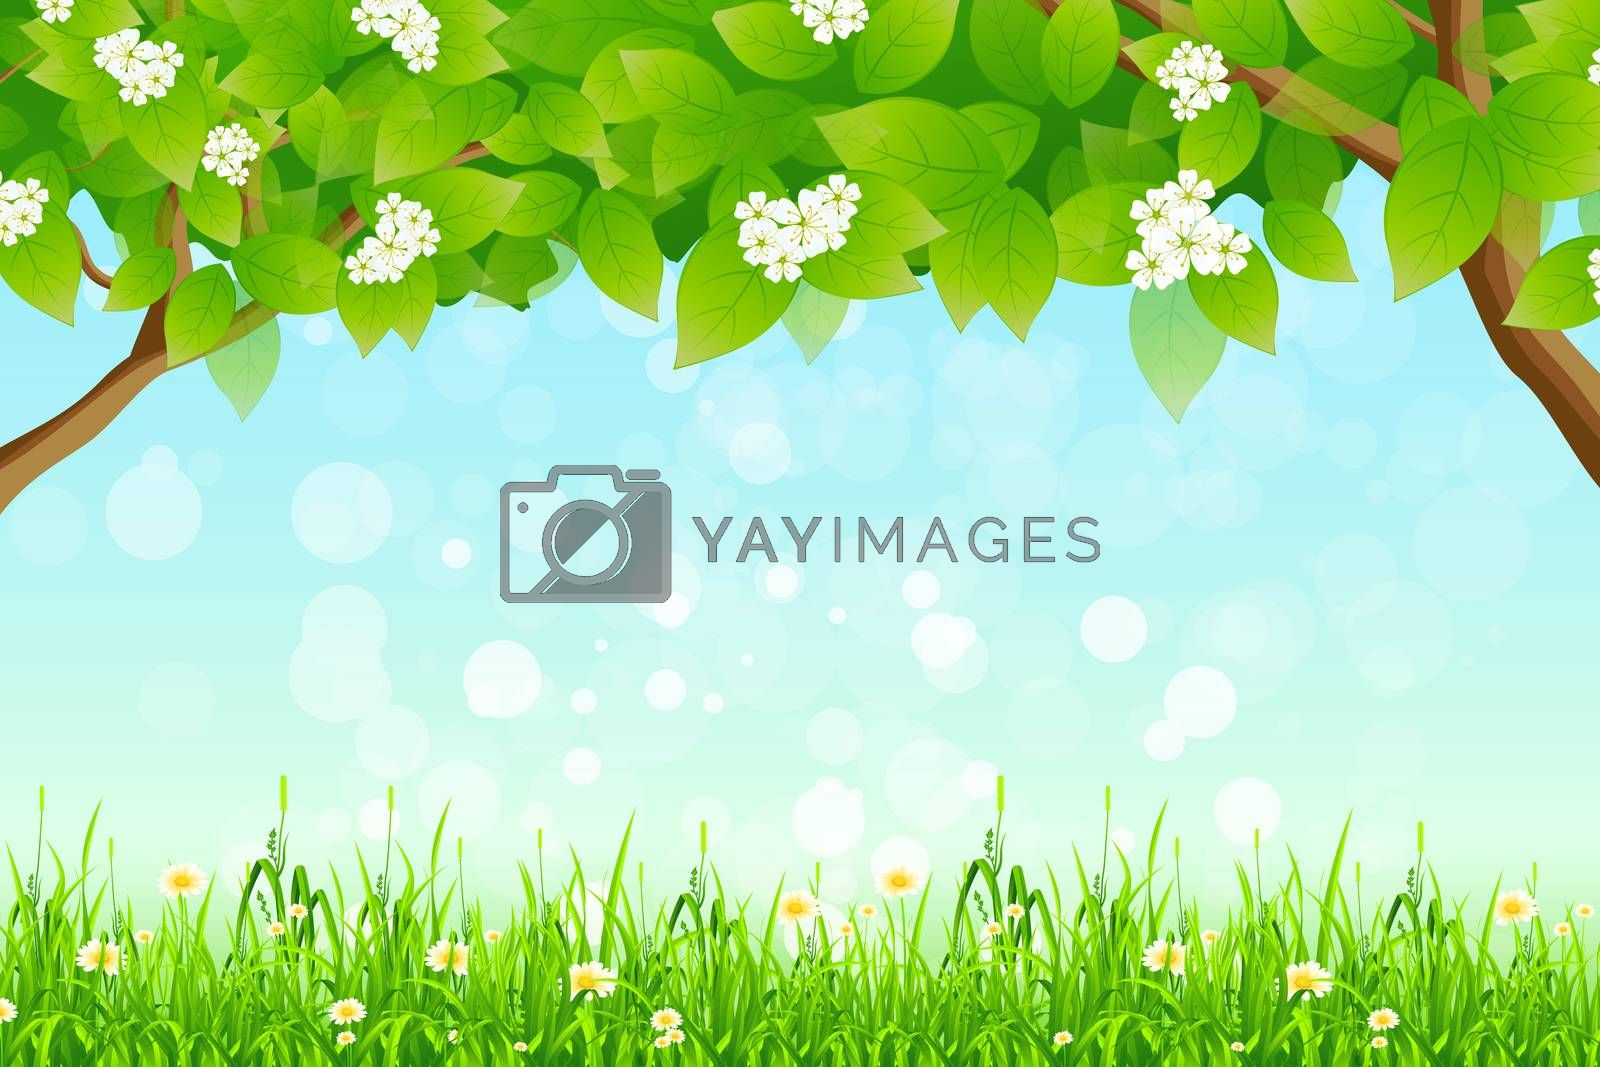 Green Background with Branches of Trees and Grass by WaD